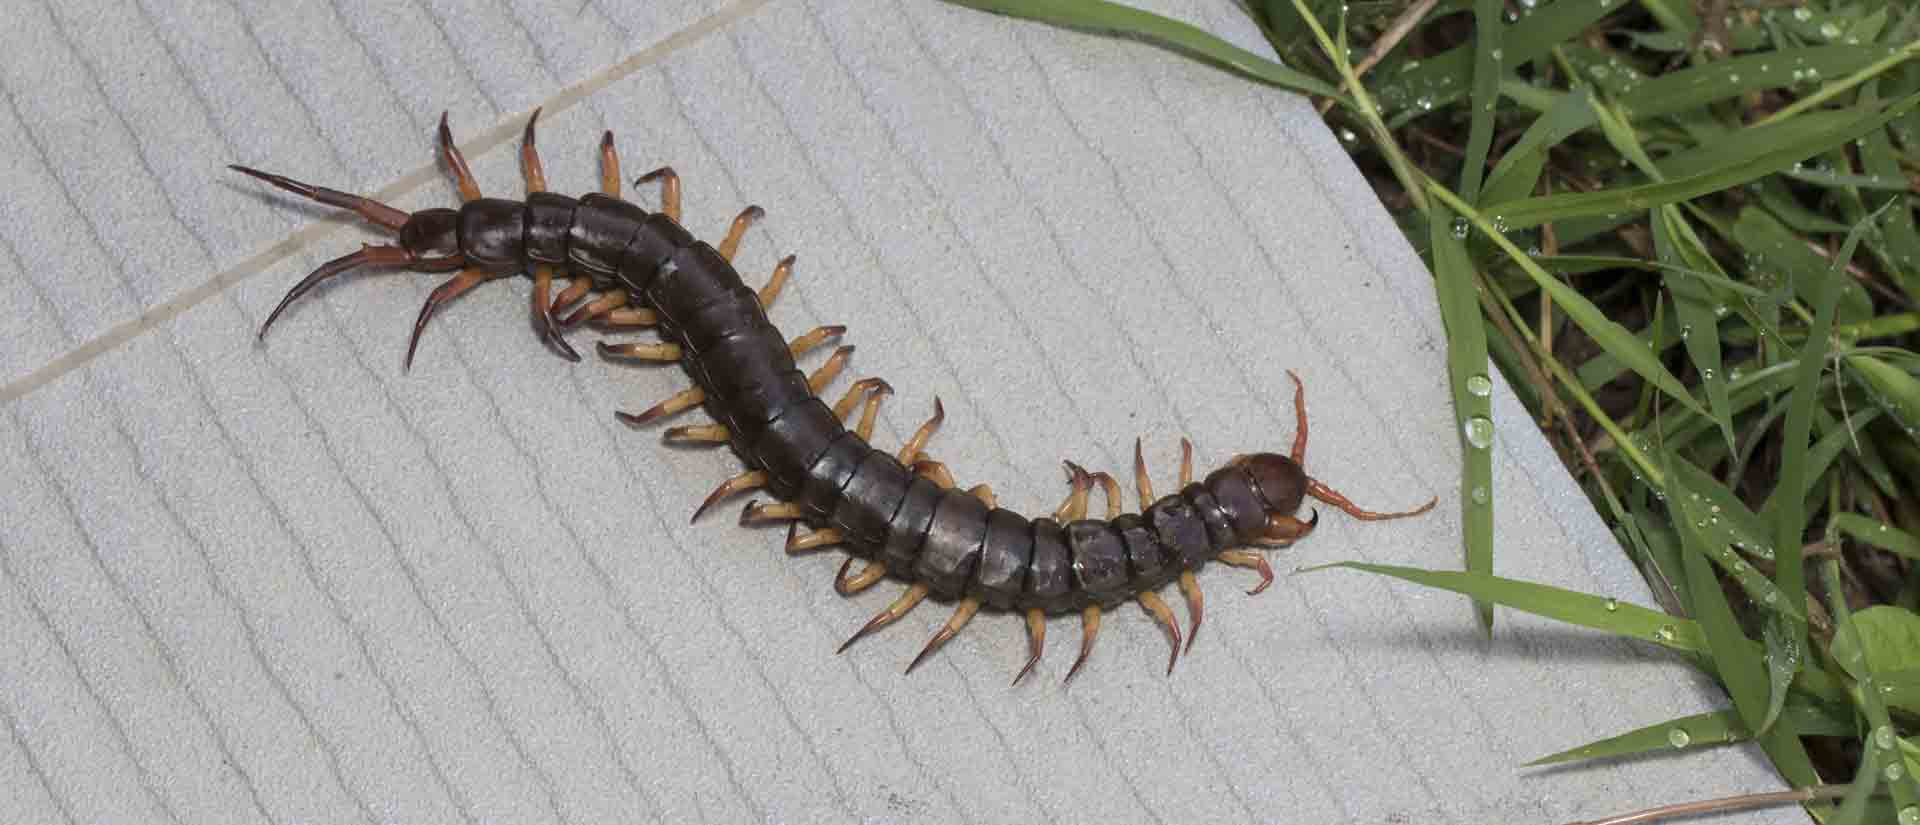 centipede pest control east county san diego